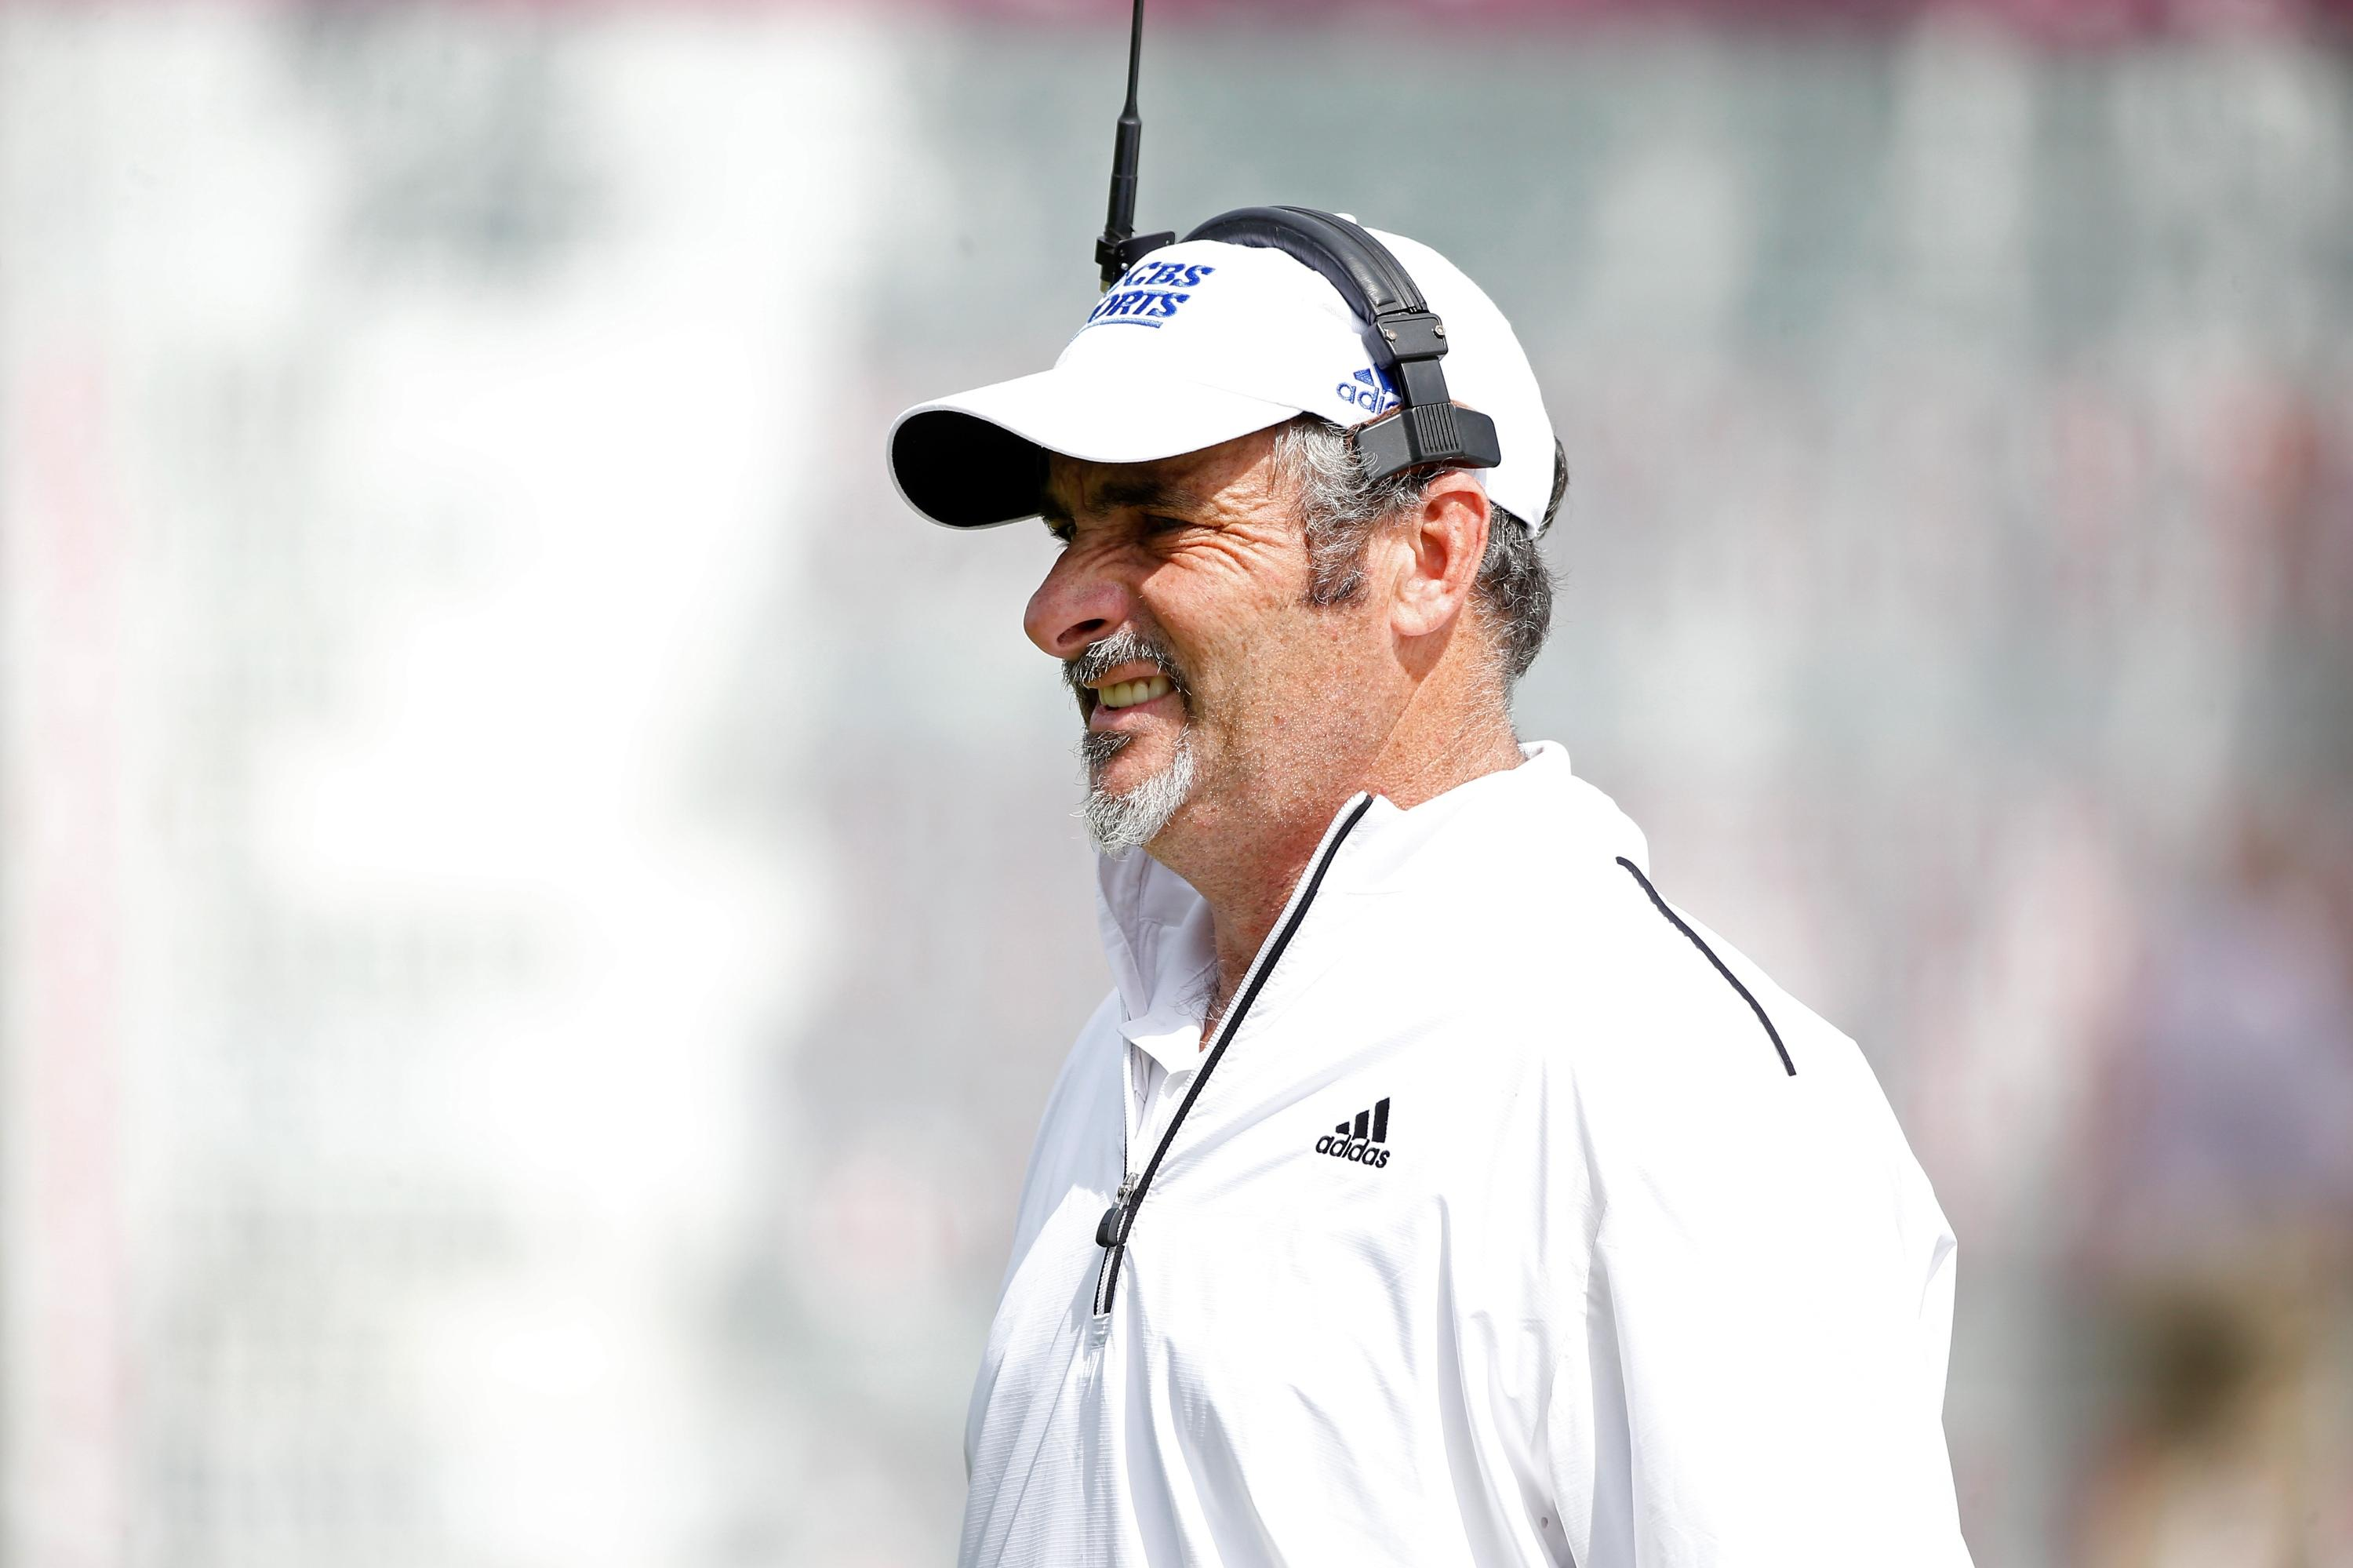 Report: David Feherty, CBS Sports part ways after failed contract talks